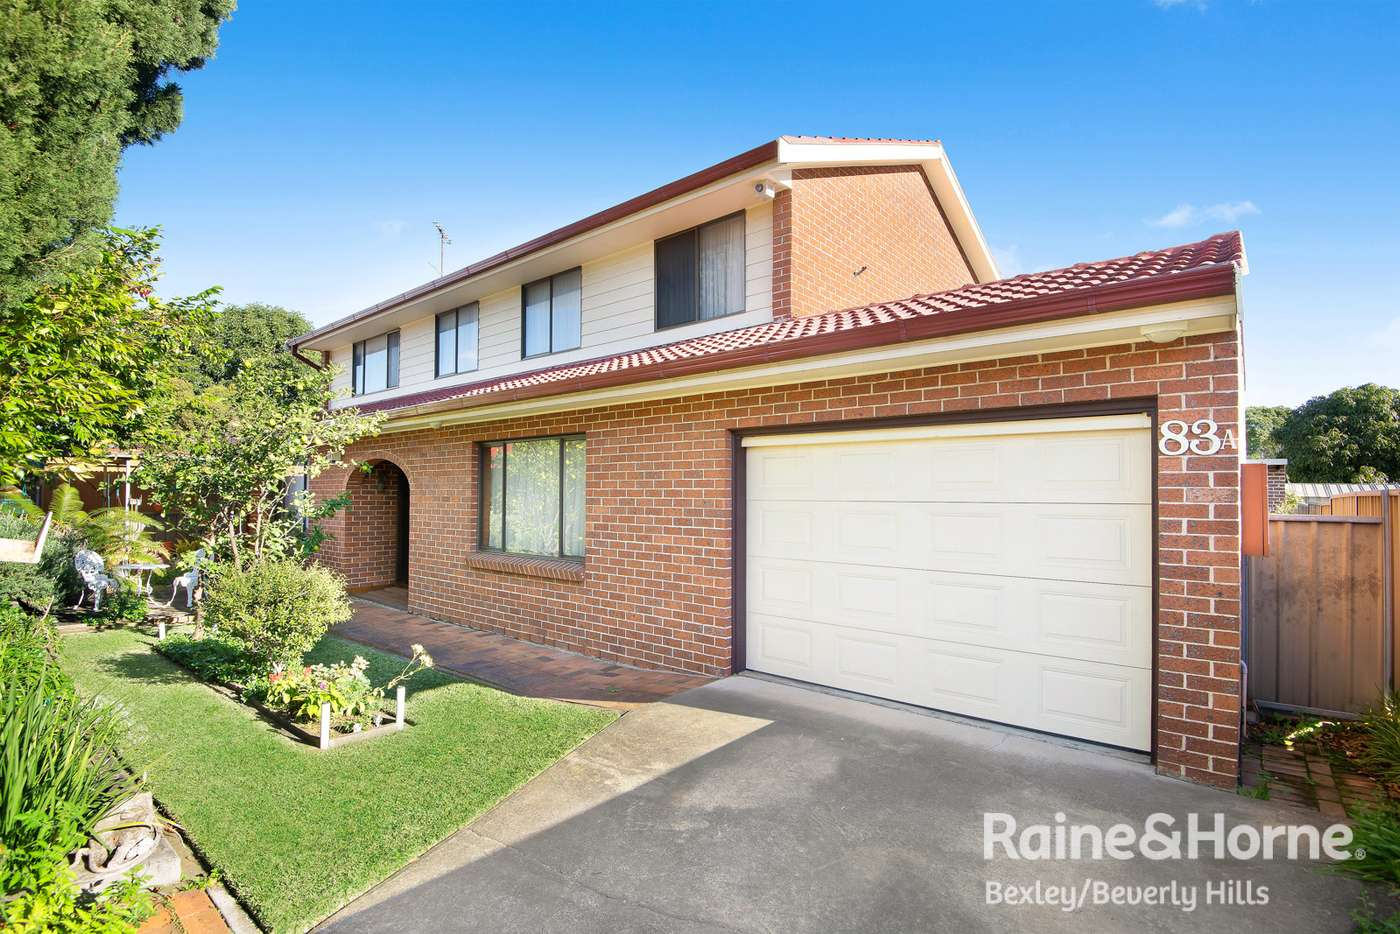 Main view of Homely house listing, 83a Harrow Road, Bexley NSW 2207